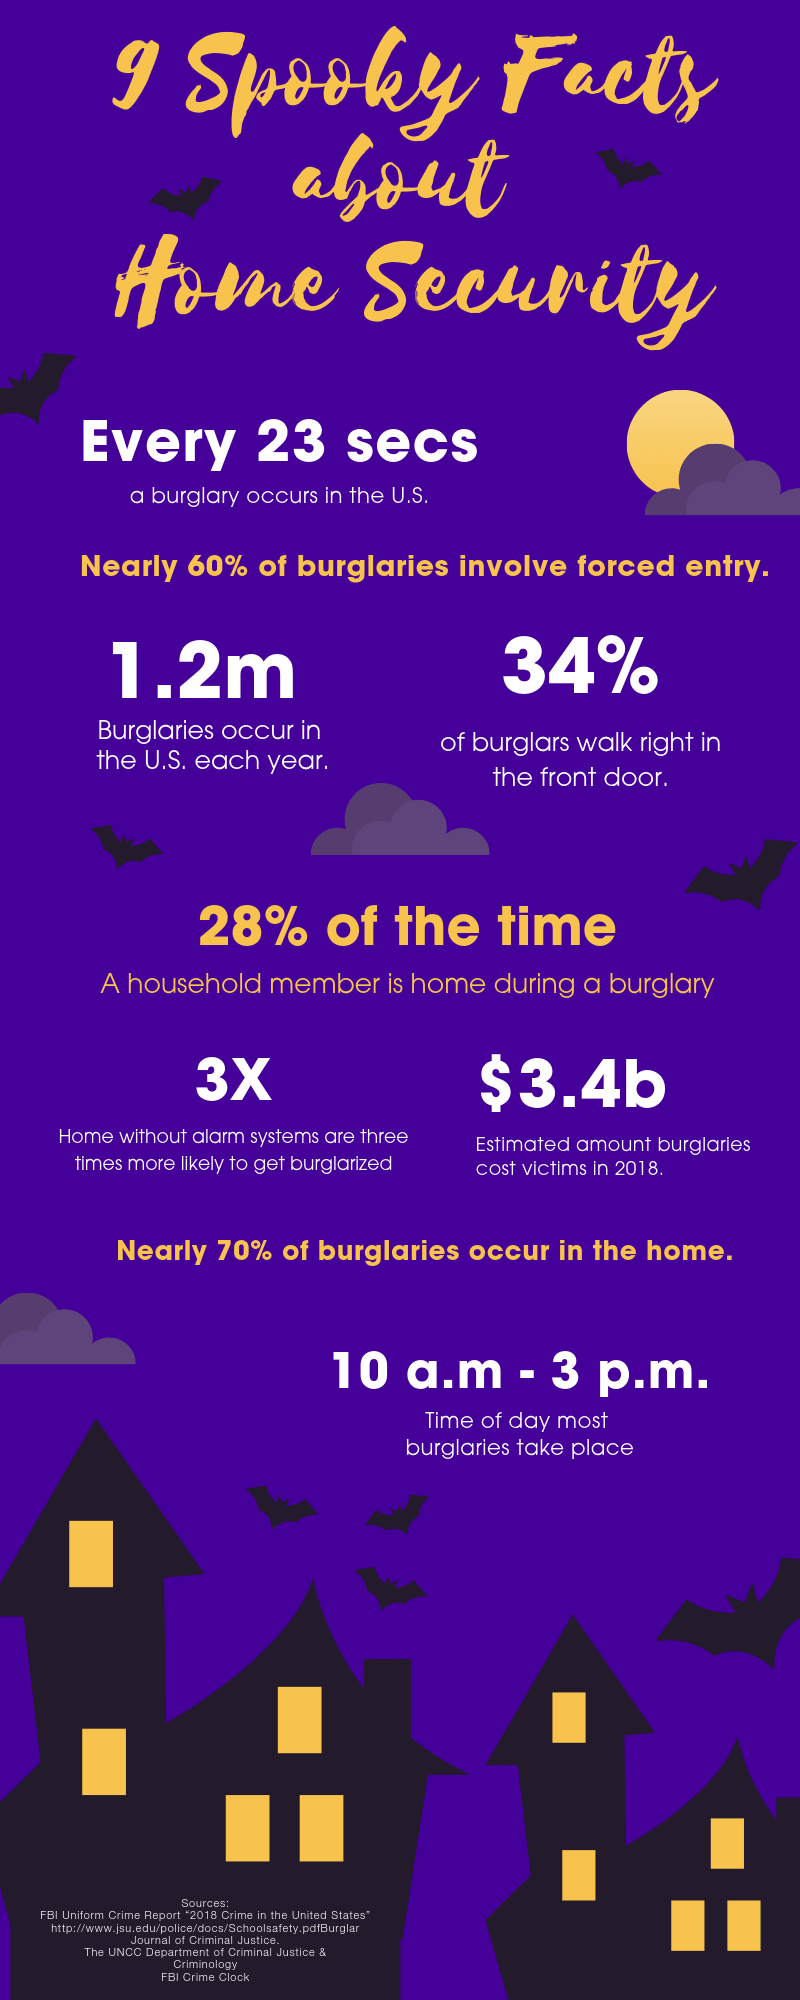 List of burglary and break-in statistics in an infographic layout.